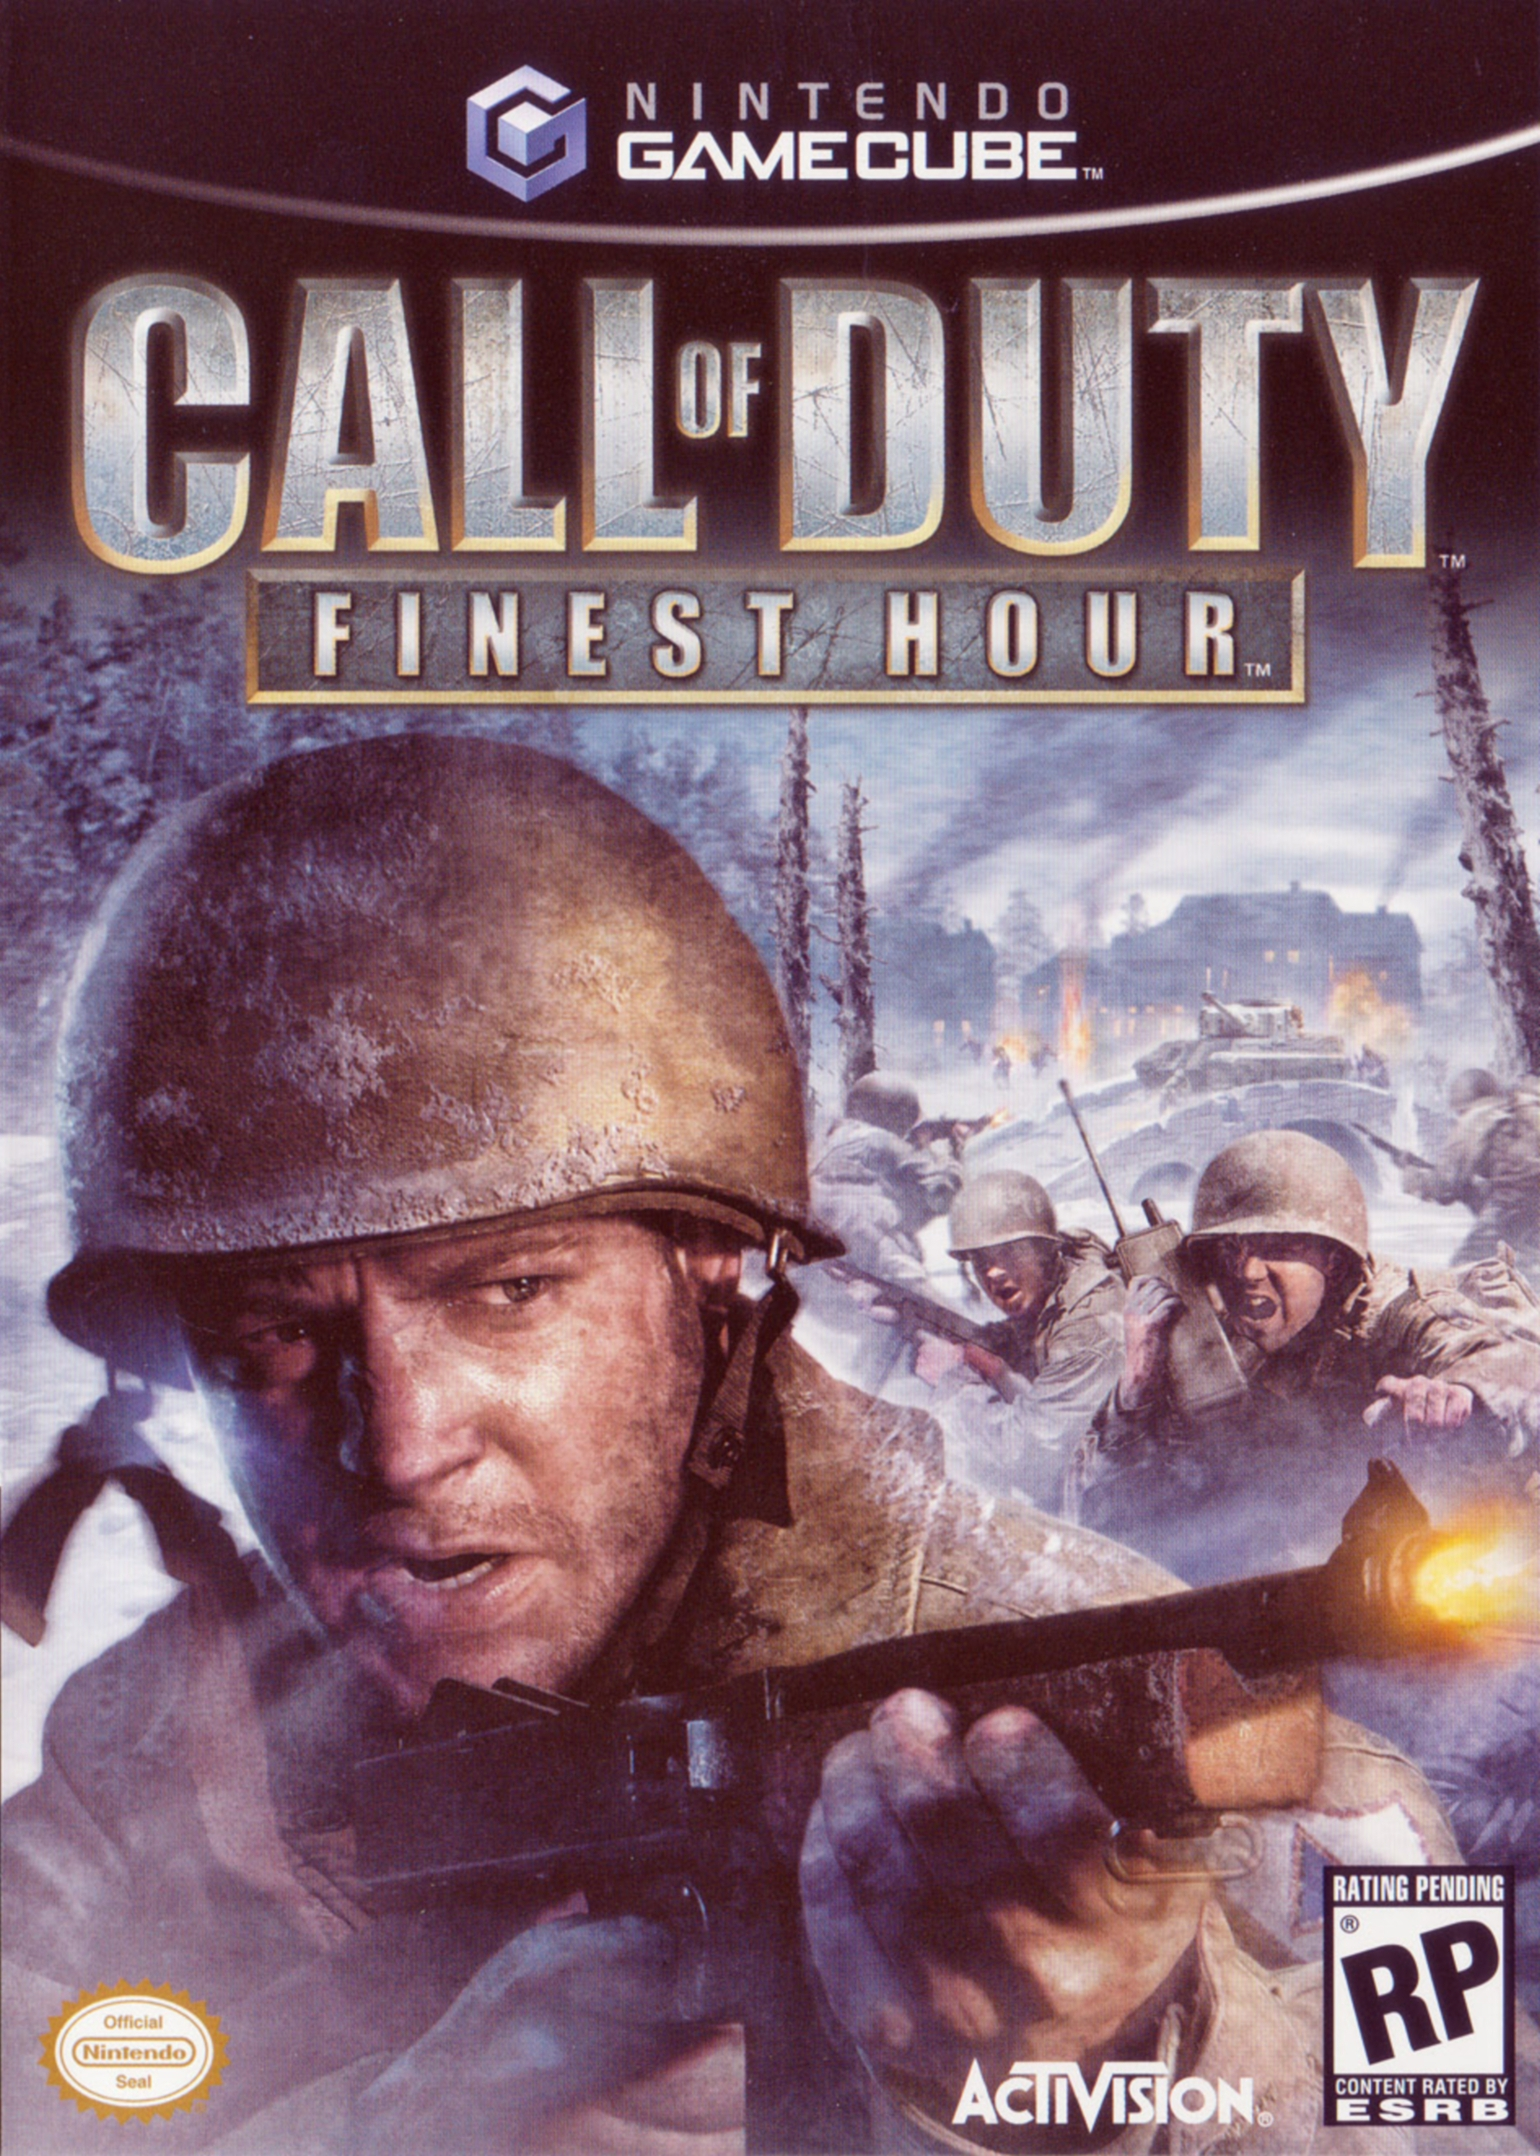 Call of Duty Finest Hour/Game Cube